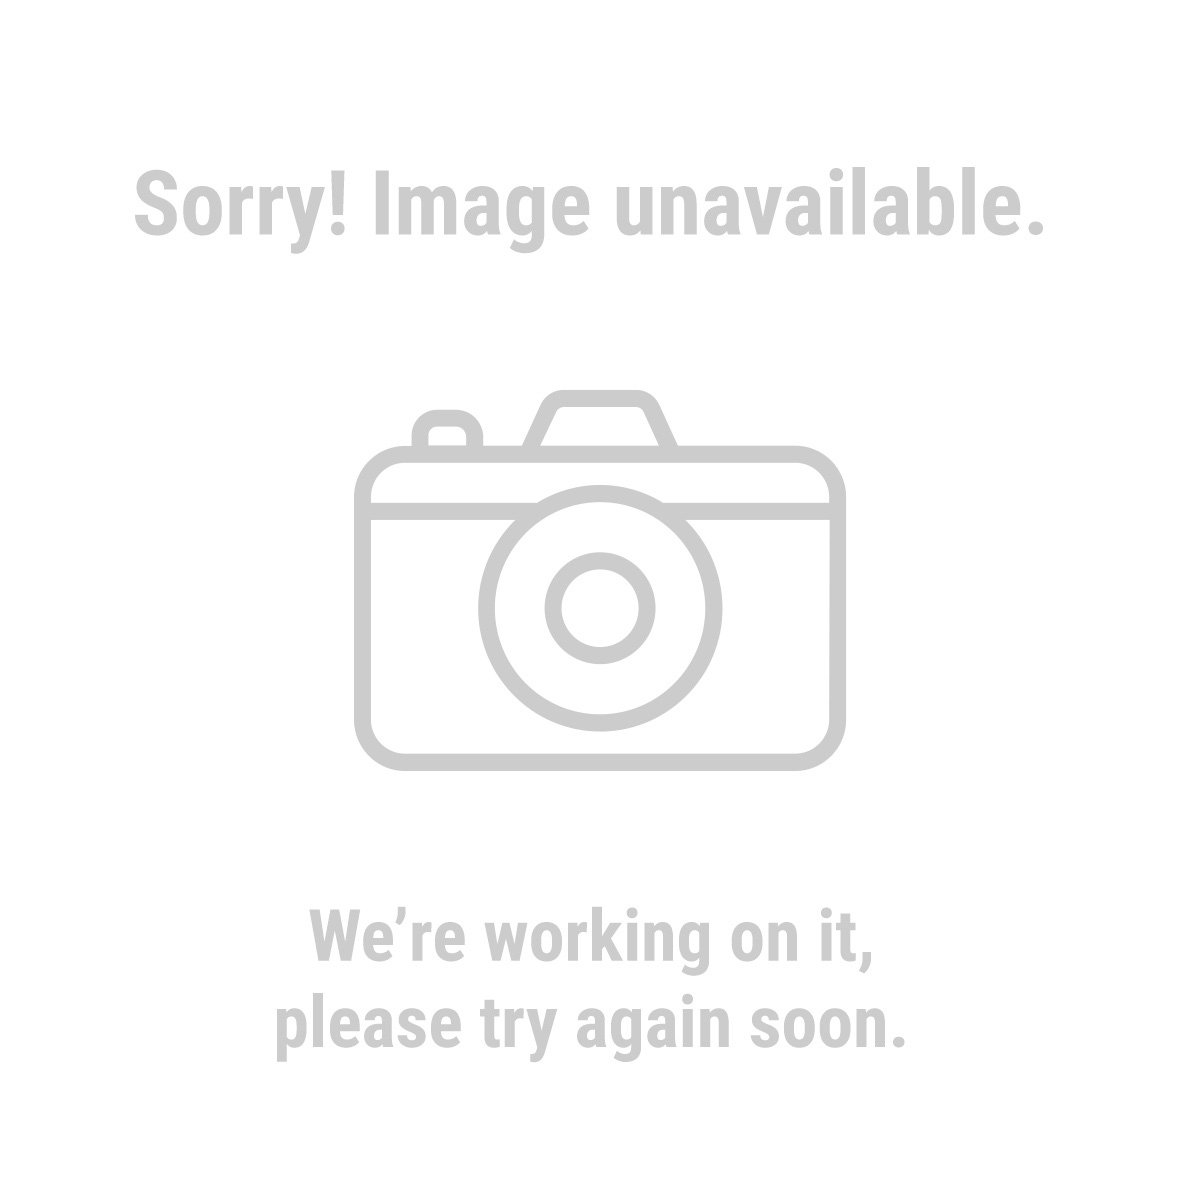 Storehouse 93928 20 Bin Portable Parts Storage Case